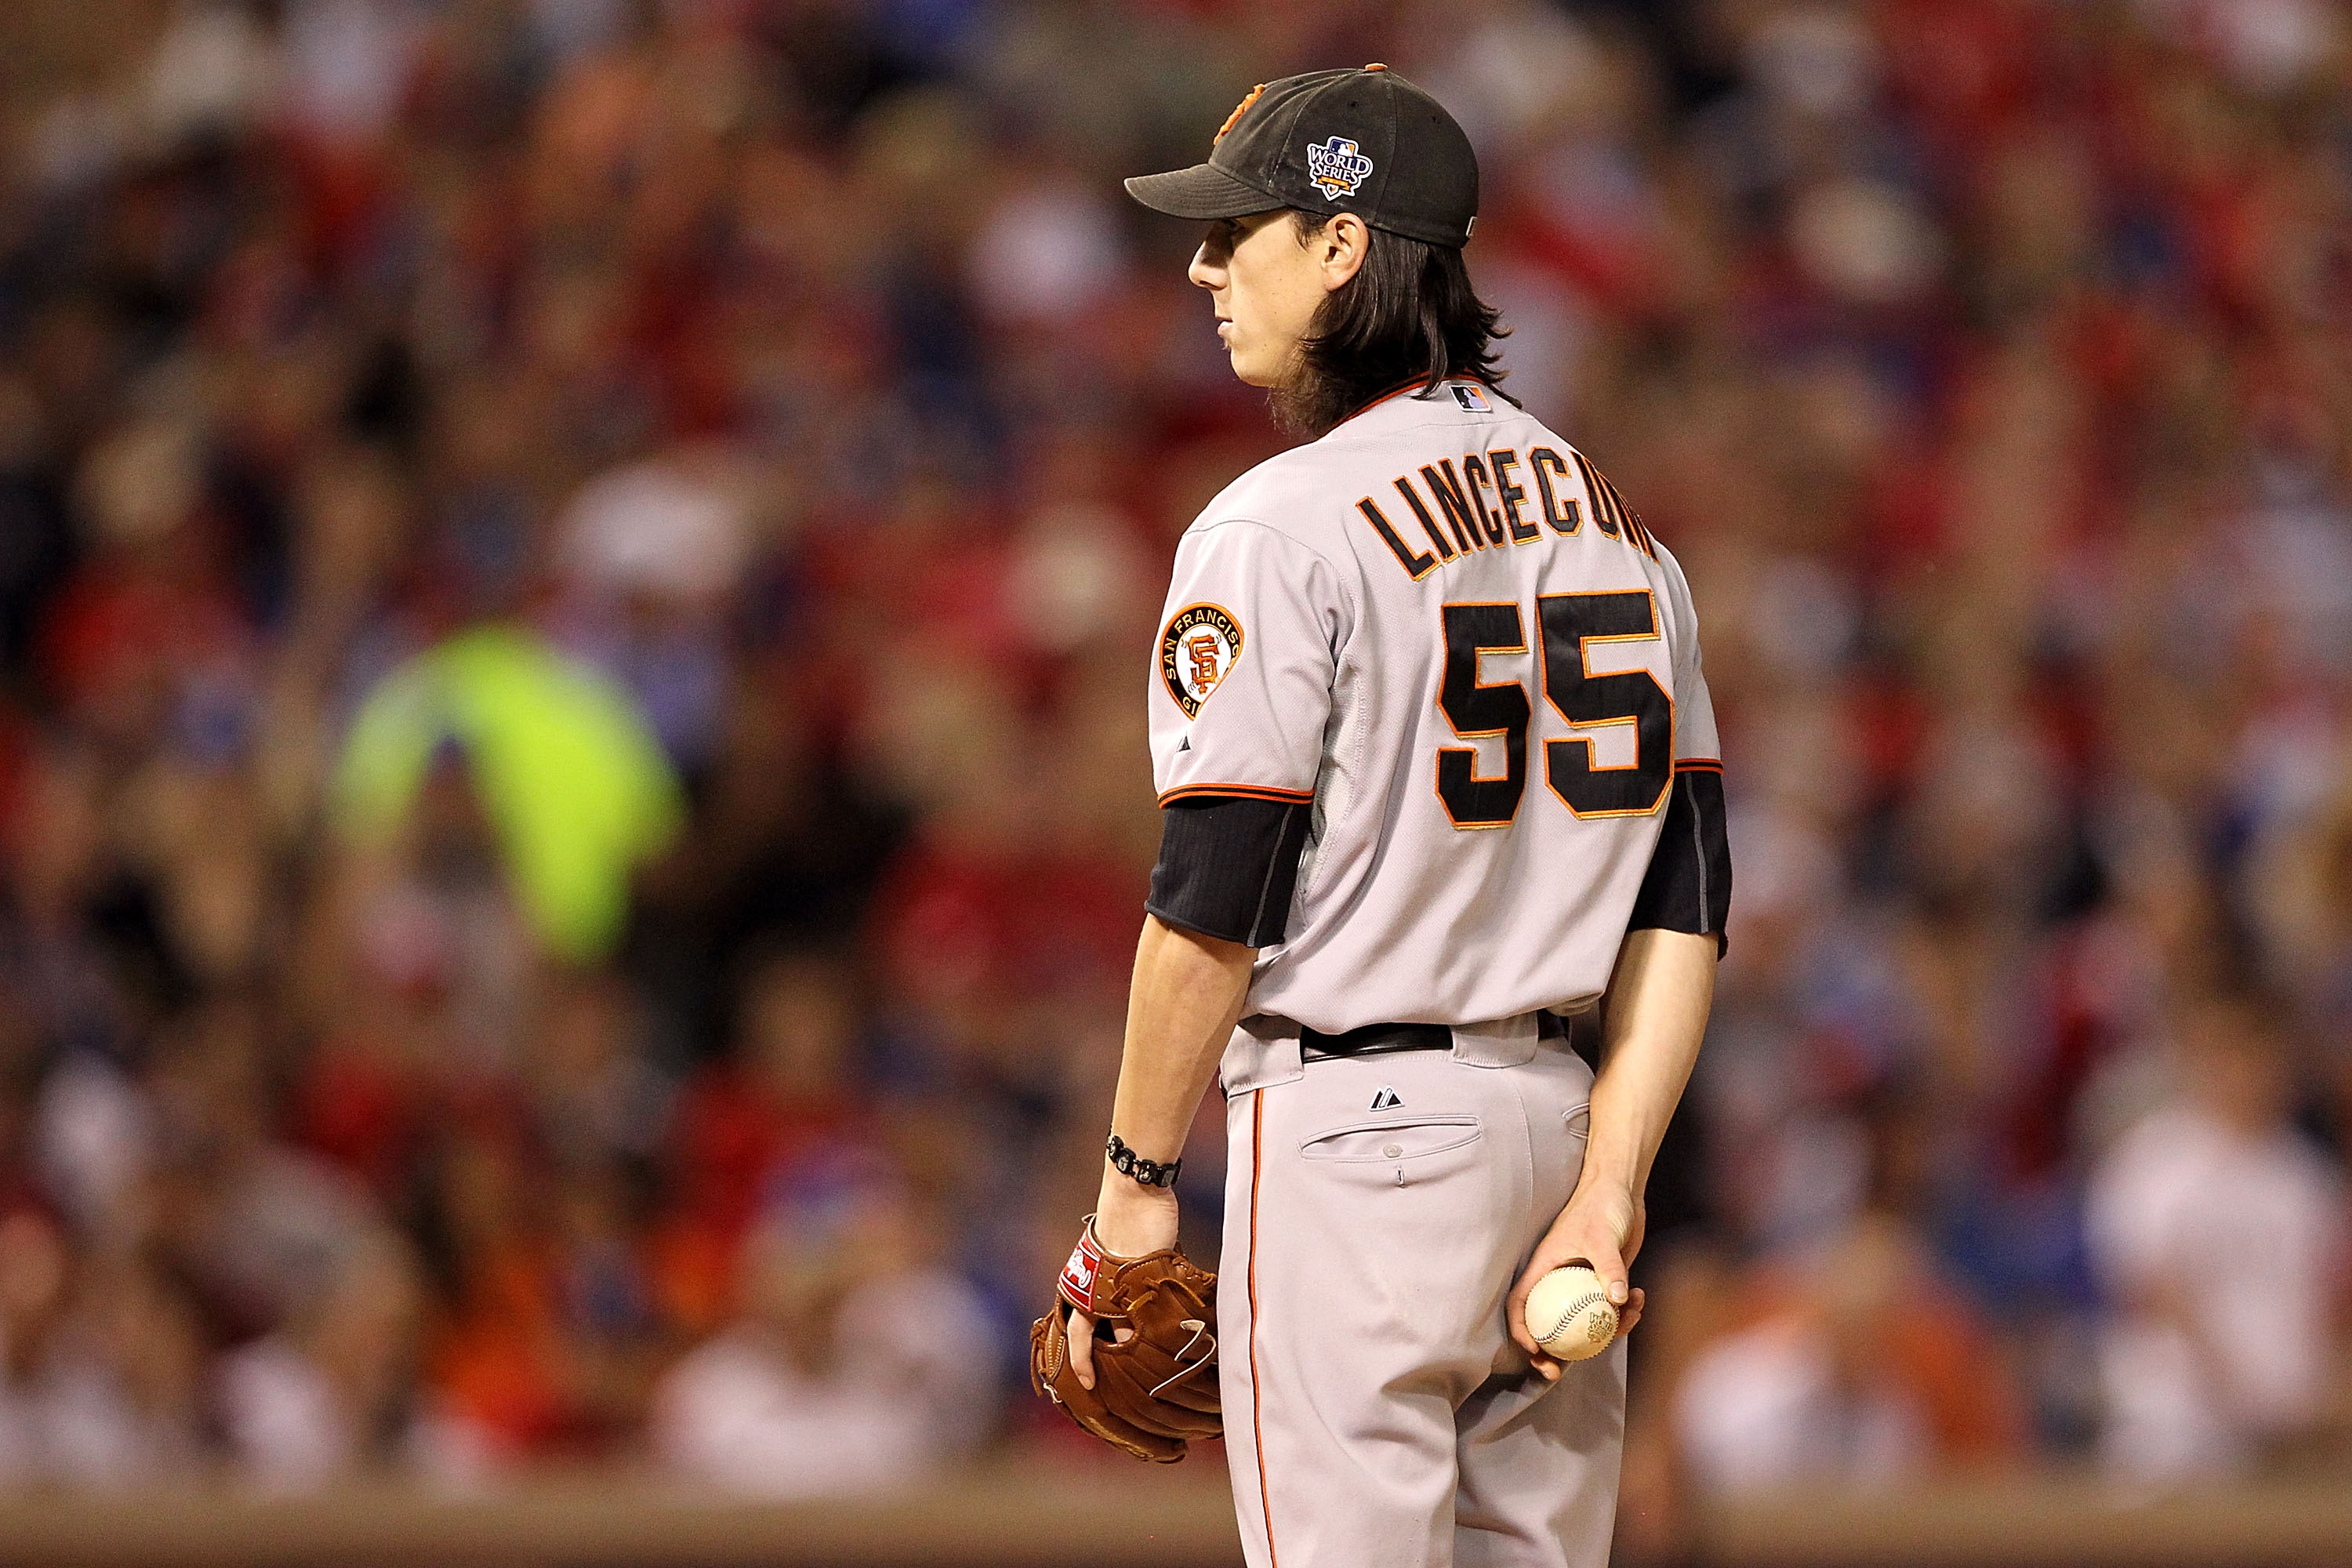 ARLINGTON, TX - NOVEMBER 01:  Tim Lincecum #55 of the San Francisco Giants gets set to throw a pitch against the Texas Rangers in Game Five of the 2010 MLB World Series at Rangers Ballpark in Arlington on November 1, 2010 in Arlington, Texas. The Giants w